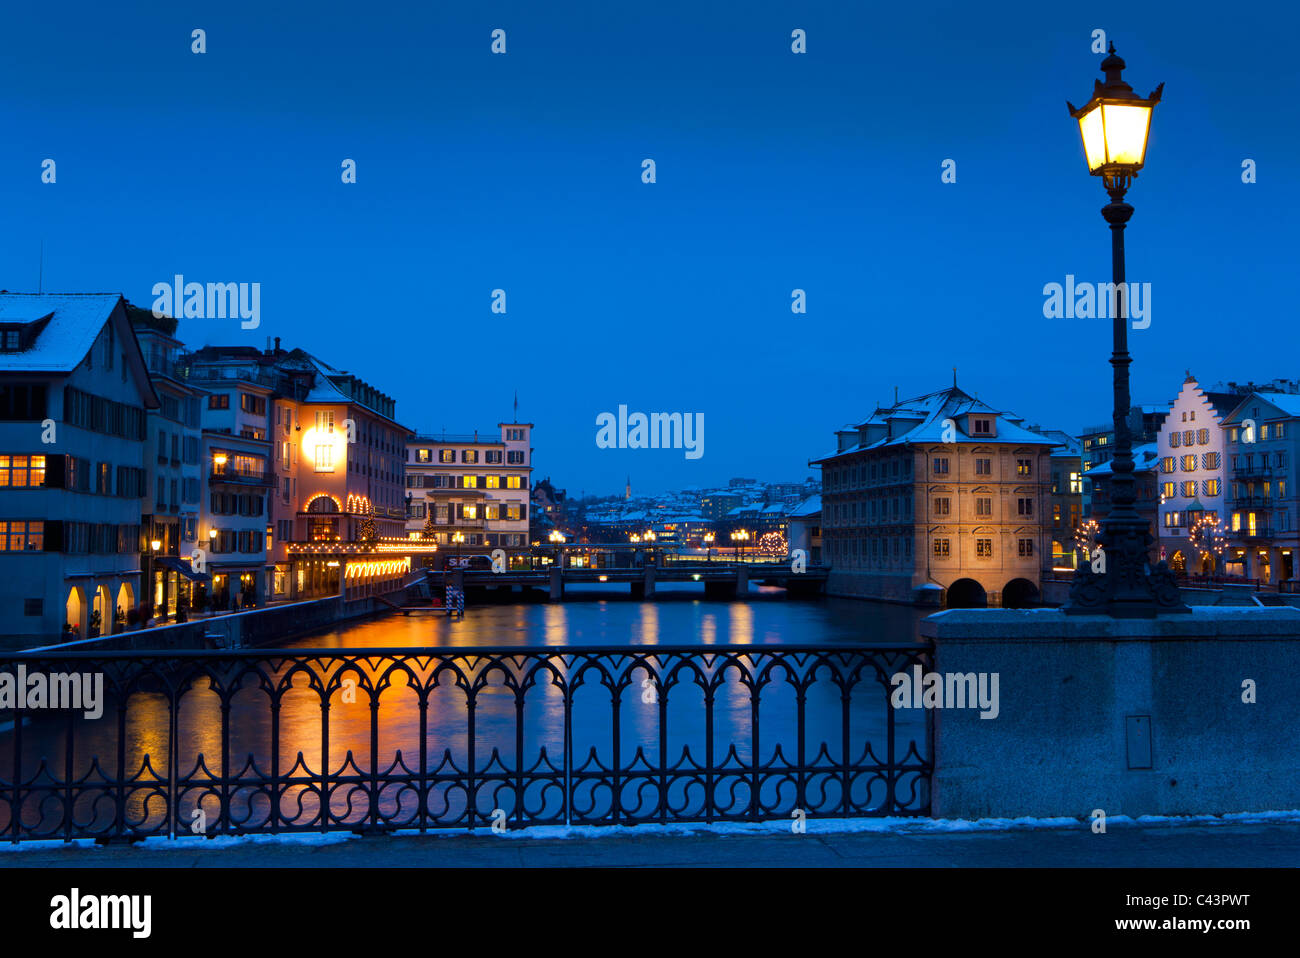 Zurich, Switzerland, canton Zurich, town, city, Old Town, river, flow, Limmat, riverside, houses, homes, bridge, - Stock Image